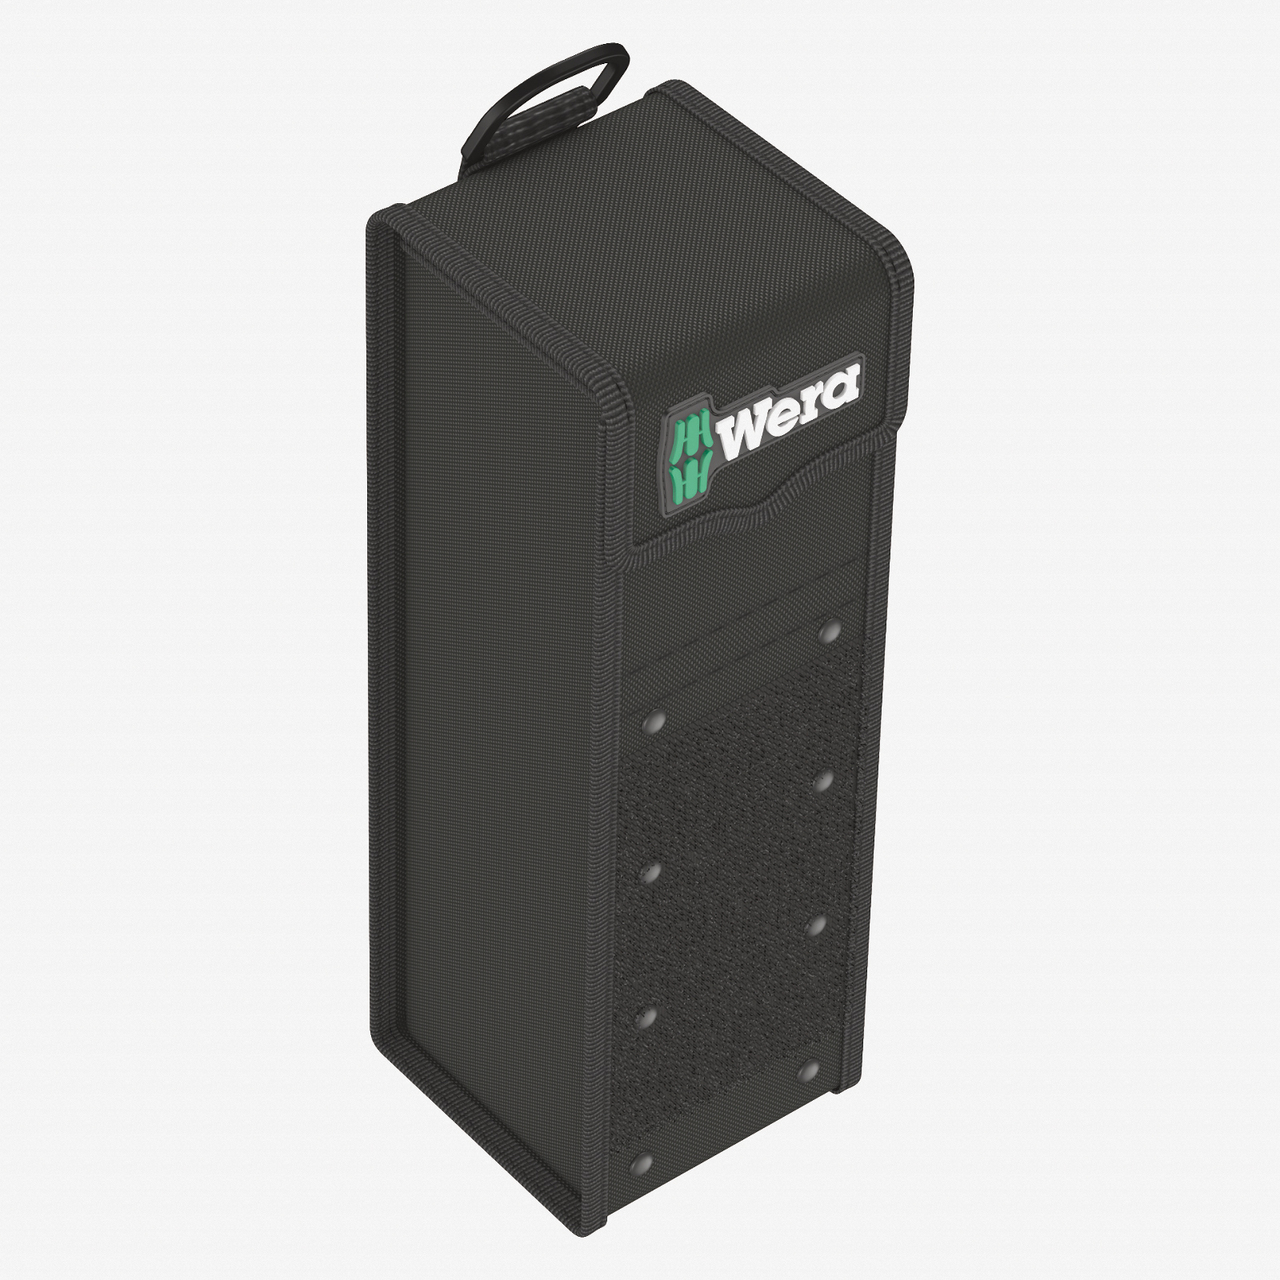 Wera 004356 Wera 2go 7 High Tool Box - KC Tool